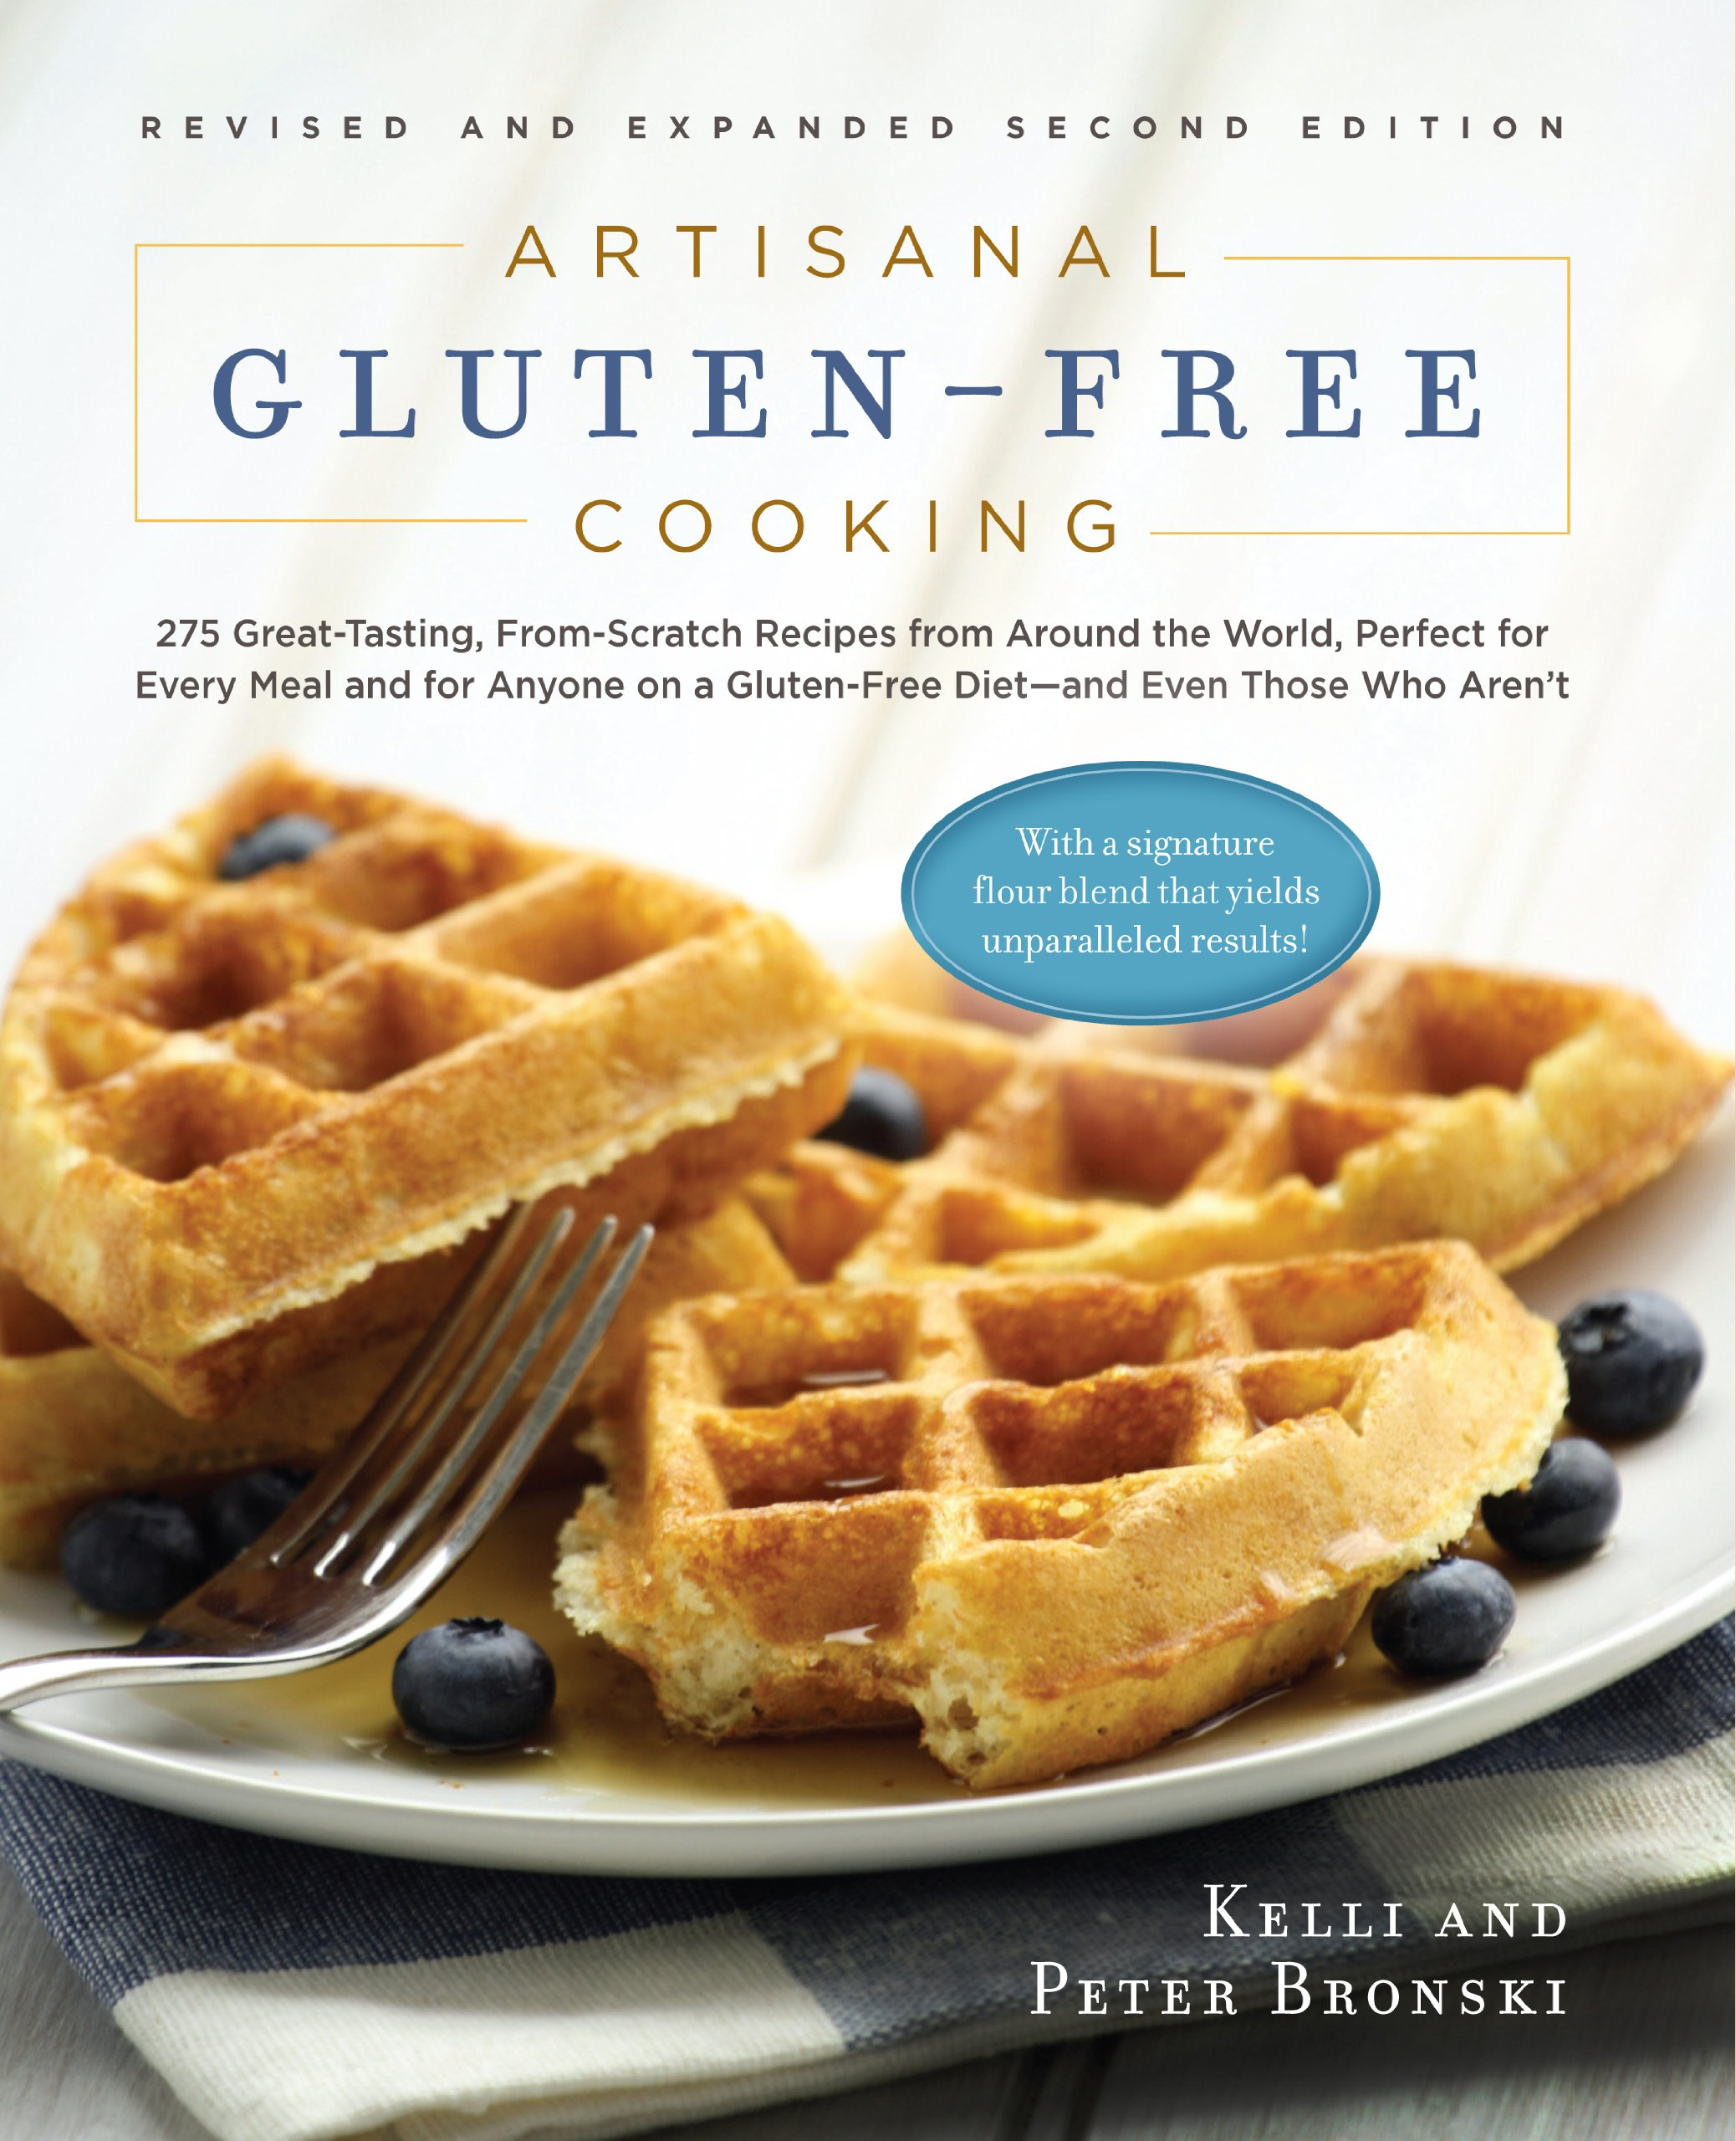 Artisinal Gluten-free Cooking Review